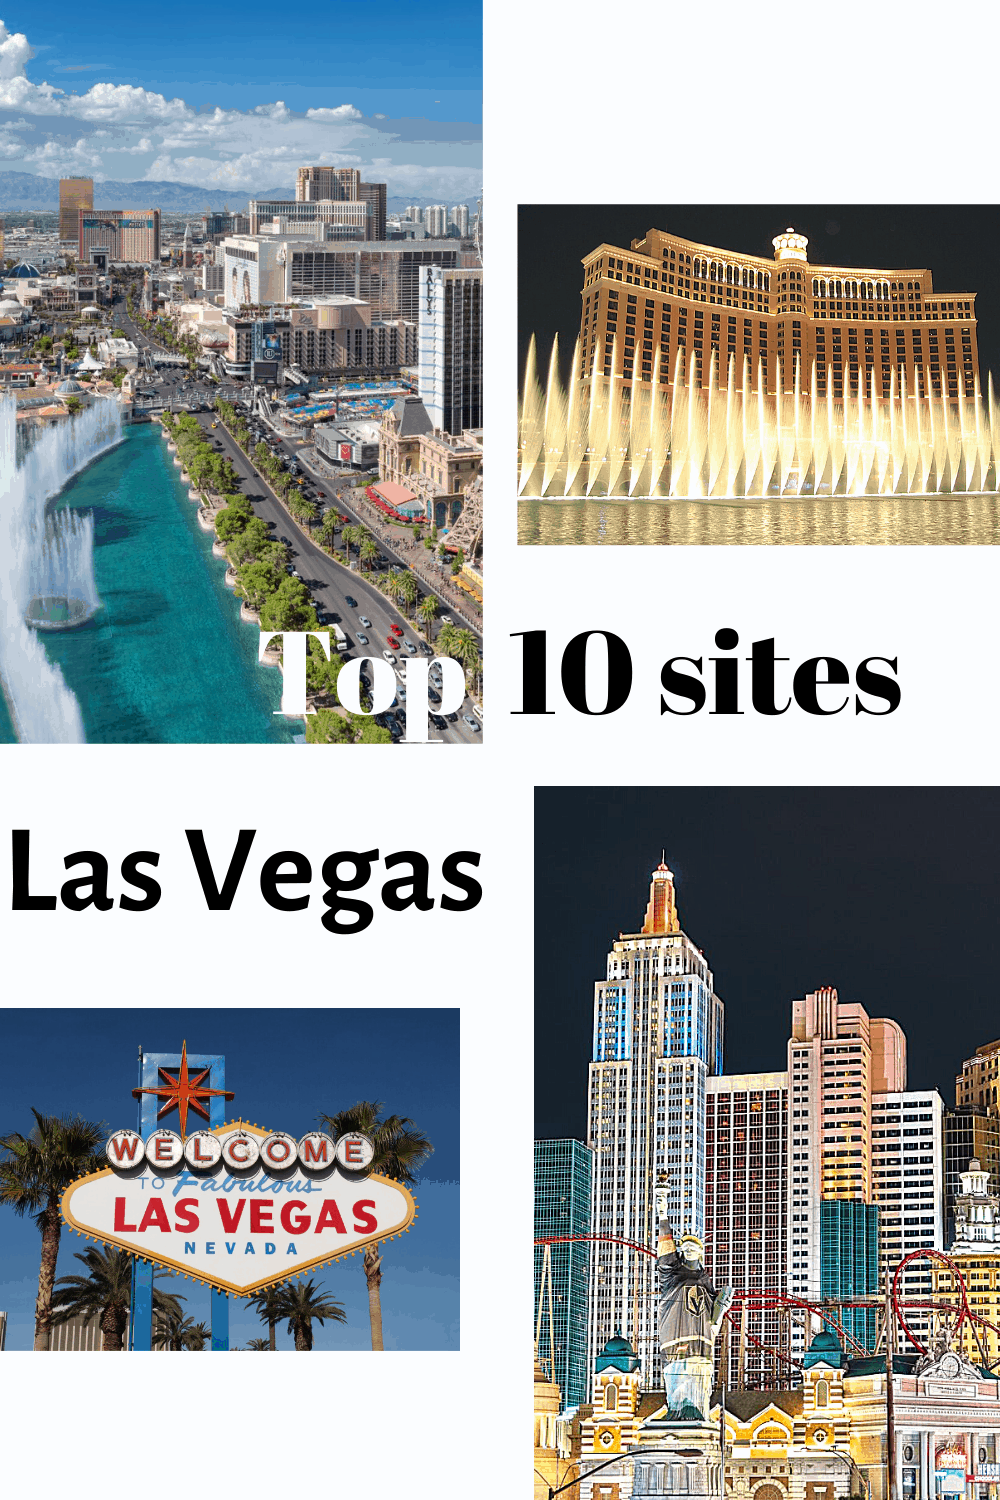 Top 10 sites in Las Vegas, What to do in Las Vegas, Best things to do in Last Vegas, Las Vegas sites, activites in las vegas #LasVegas #travelusa #Thetoptentraveler